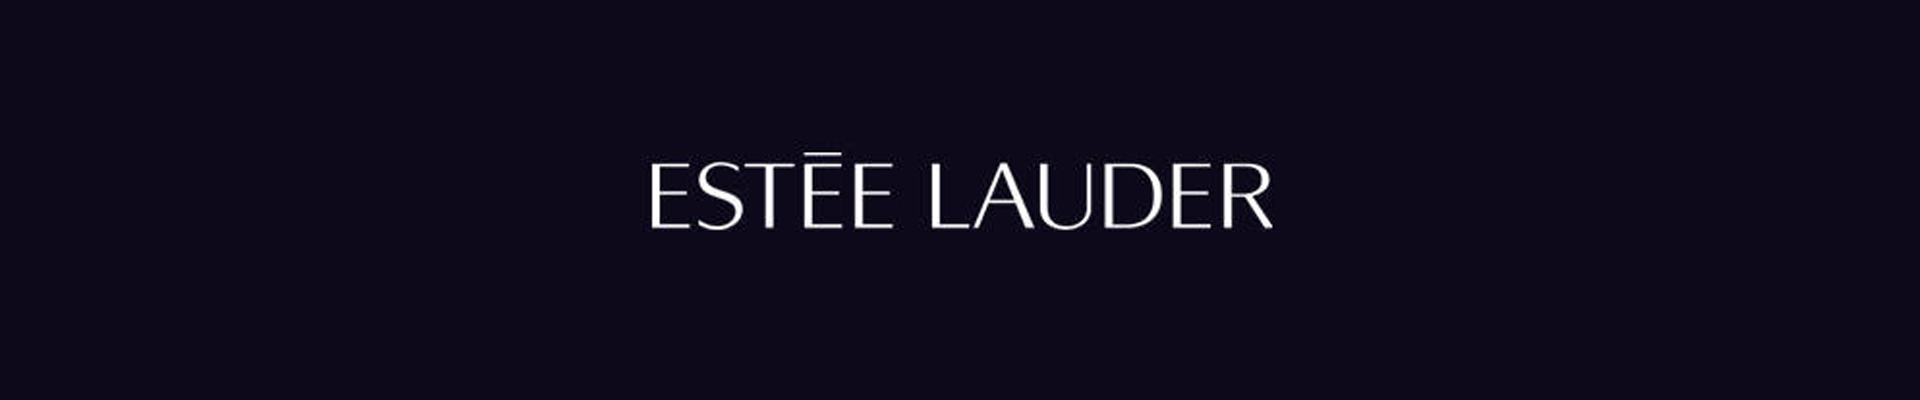 estee_lauder_header_stuttafords.jpg